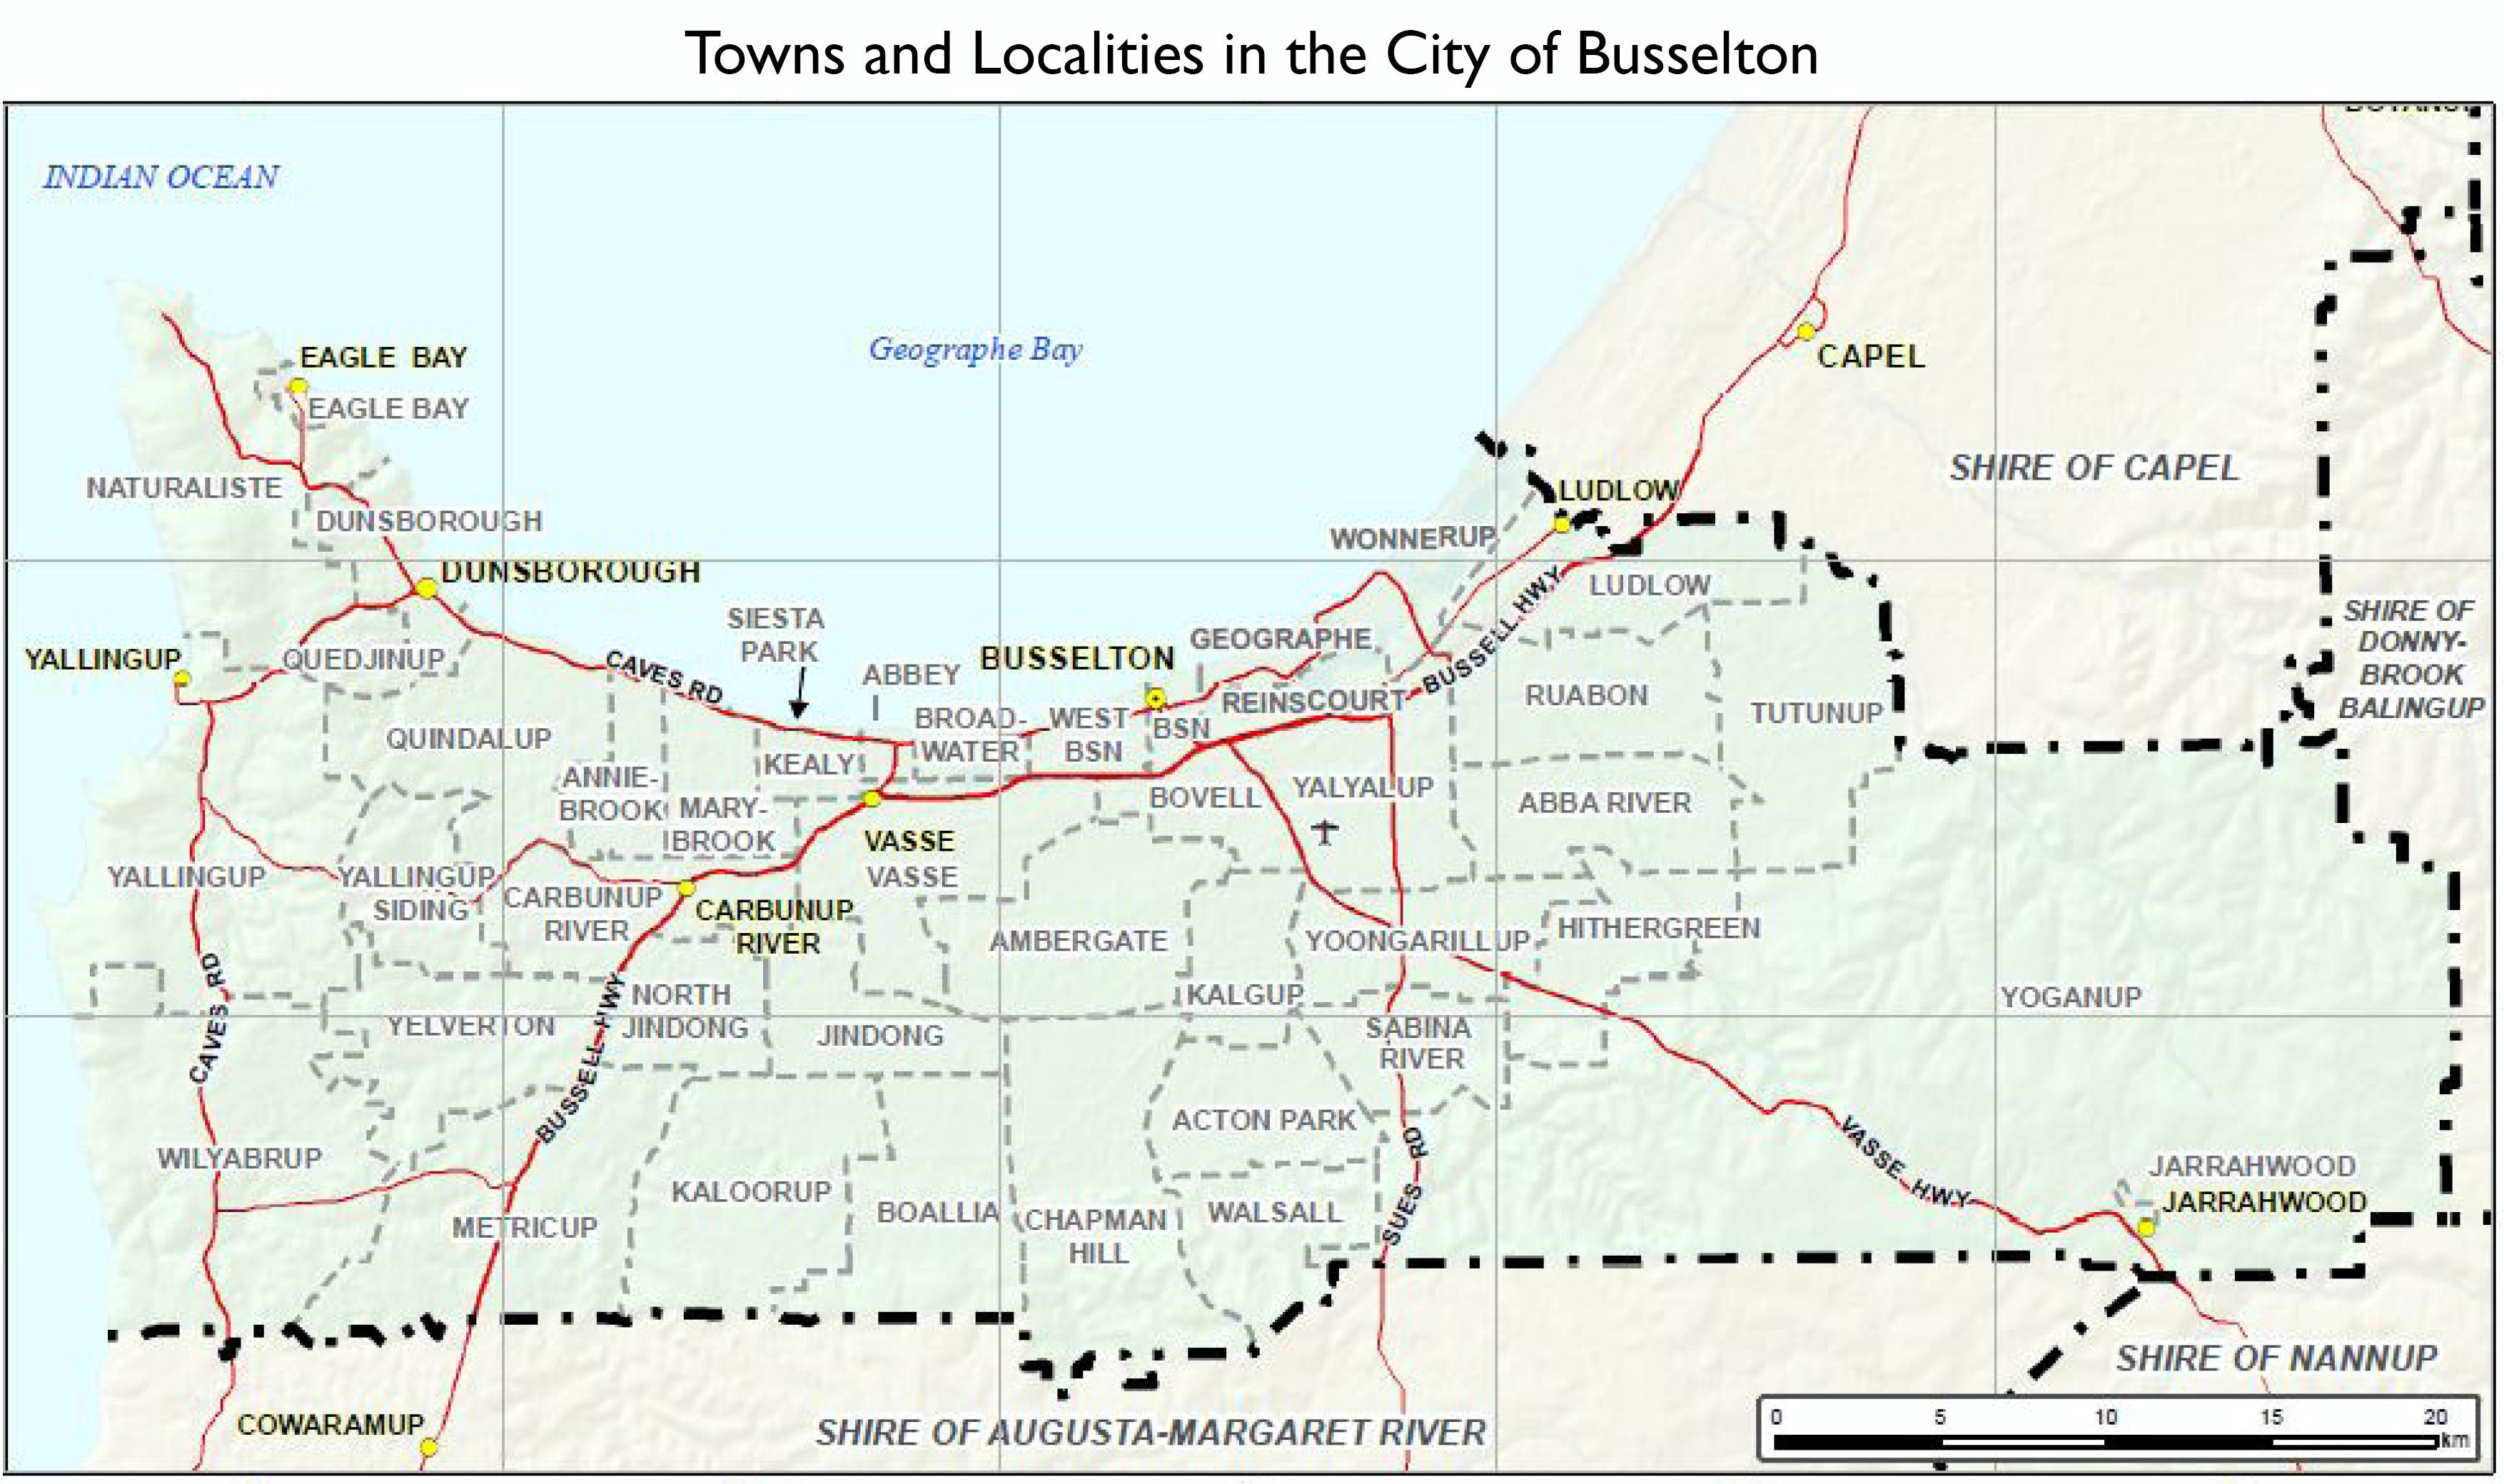 City of Busselton Towns and Localities